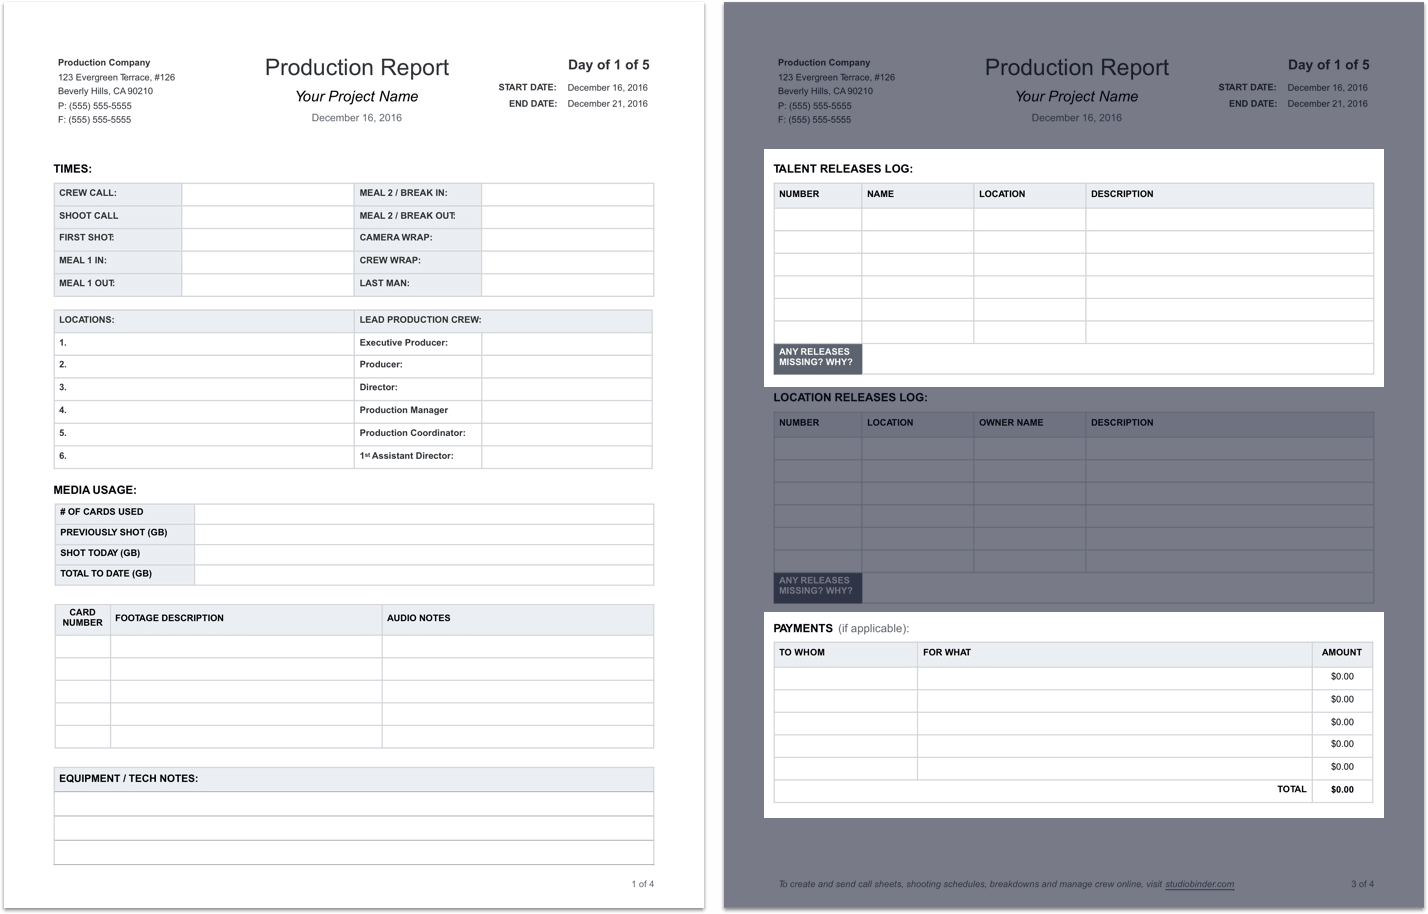 Daily Production Report Template   Tear Sheet   StudioBinder  Business Reporting Templates